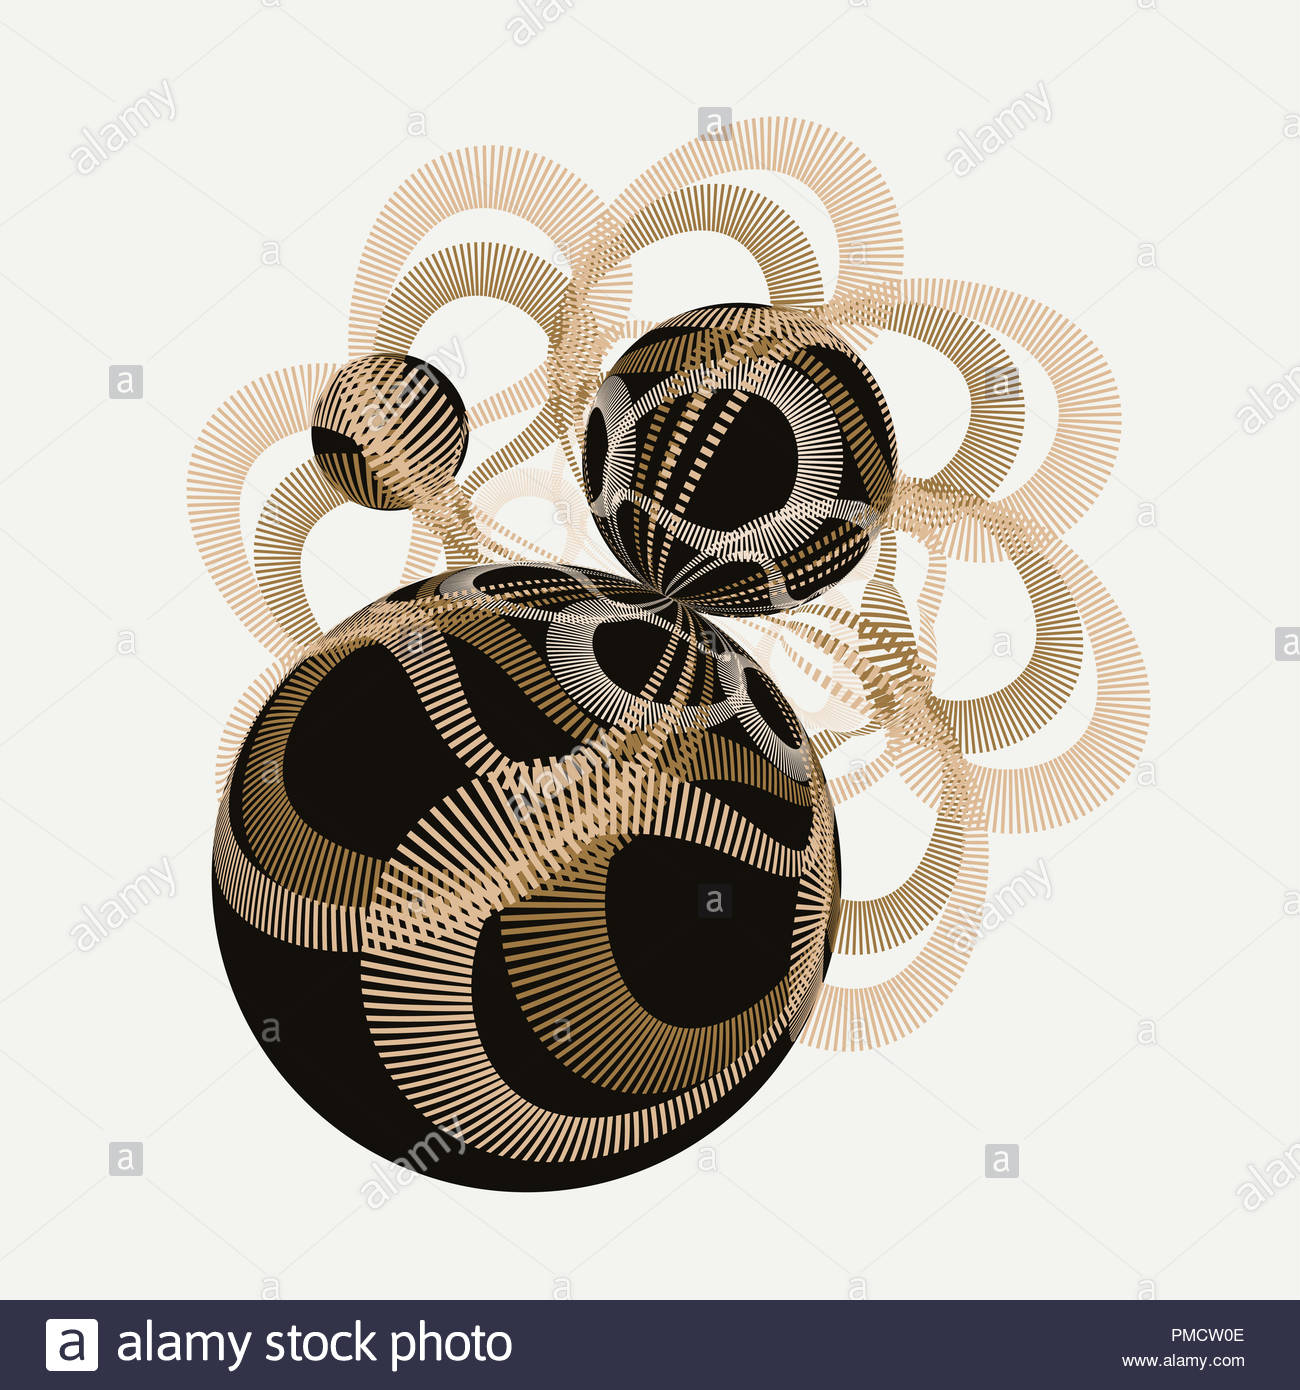 abstract illustration with geometric entanglement of spheres in gold and black - Stock Image